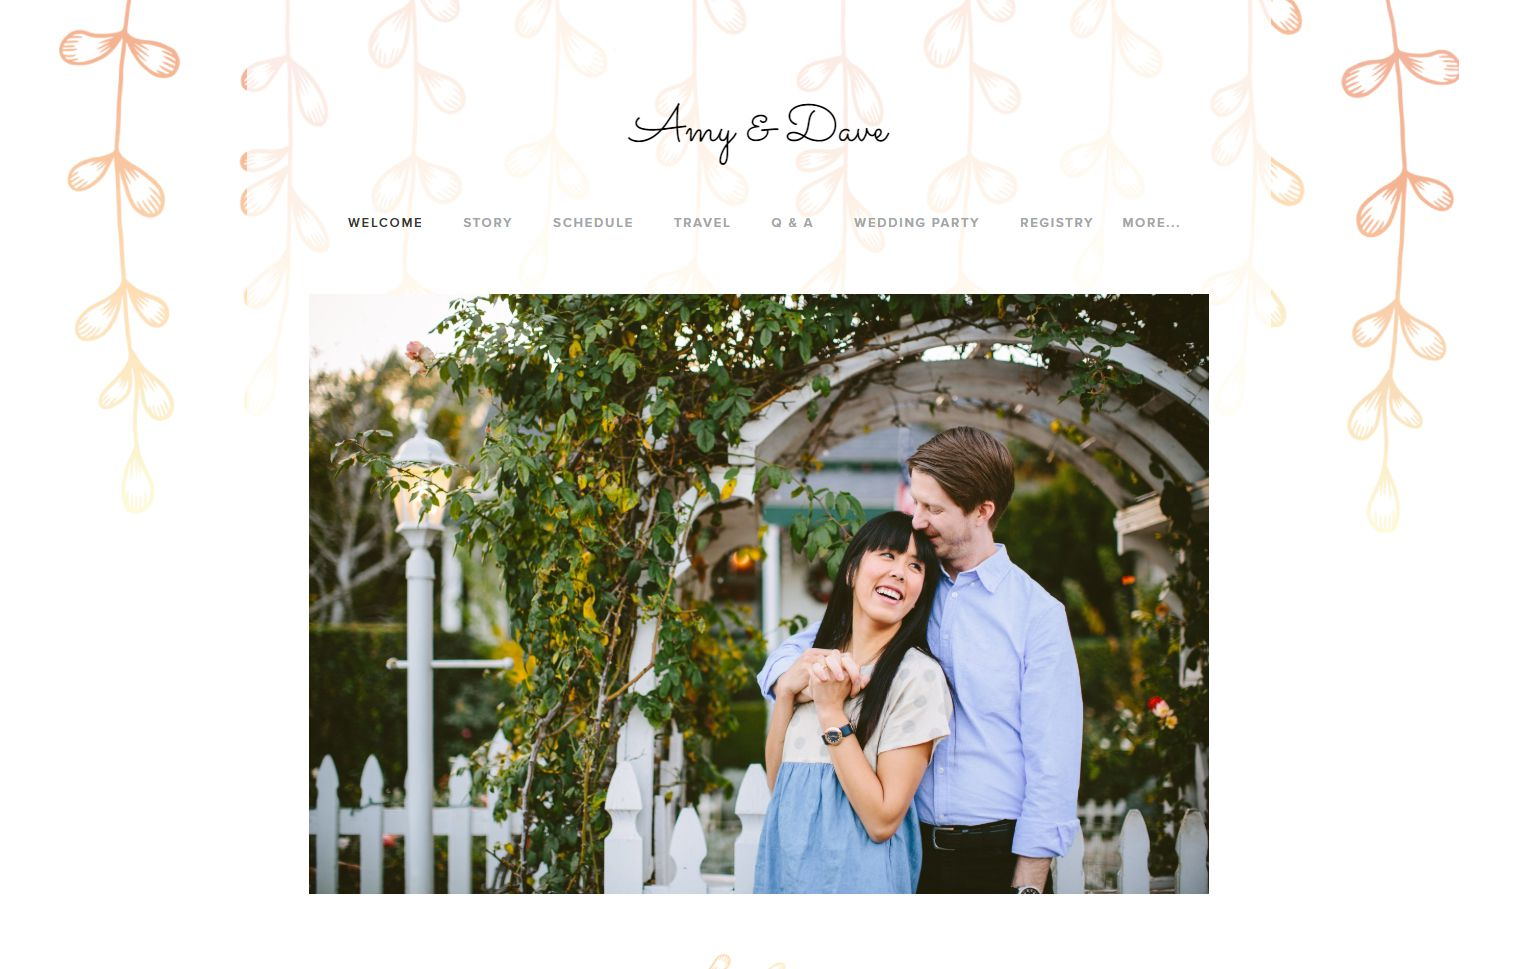 A screenshot of a wedding website with a couple embracing